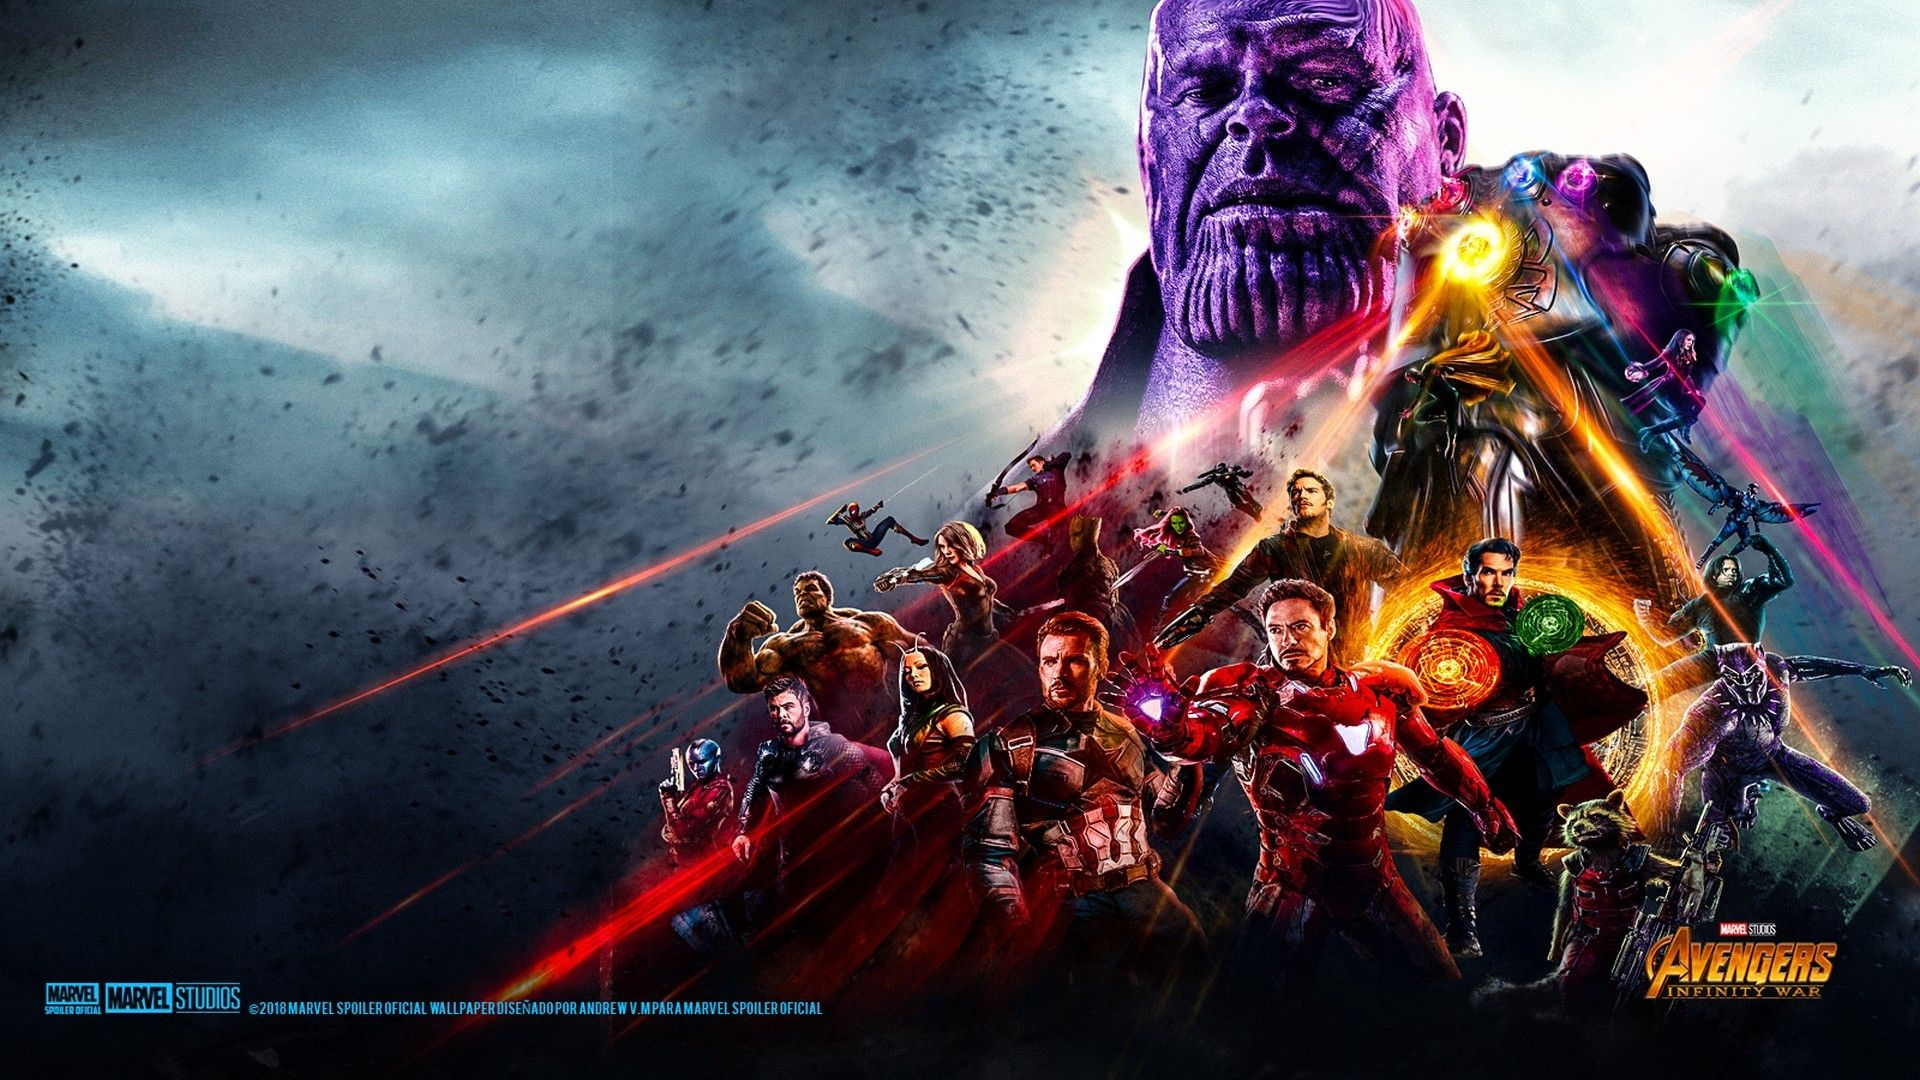 Avengers 3 Wallpaper For Desktop Best Hd Wallpapers Hd